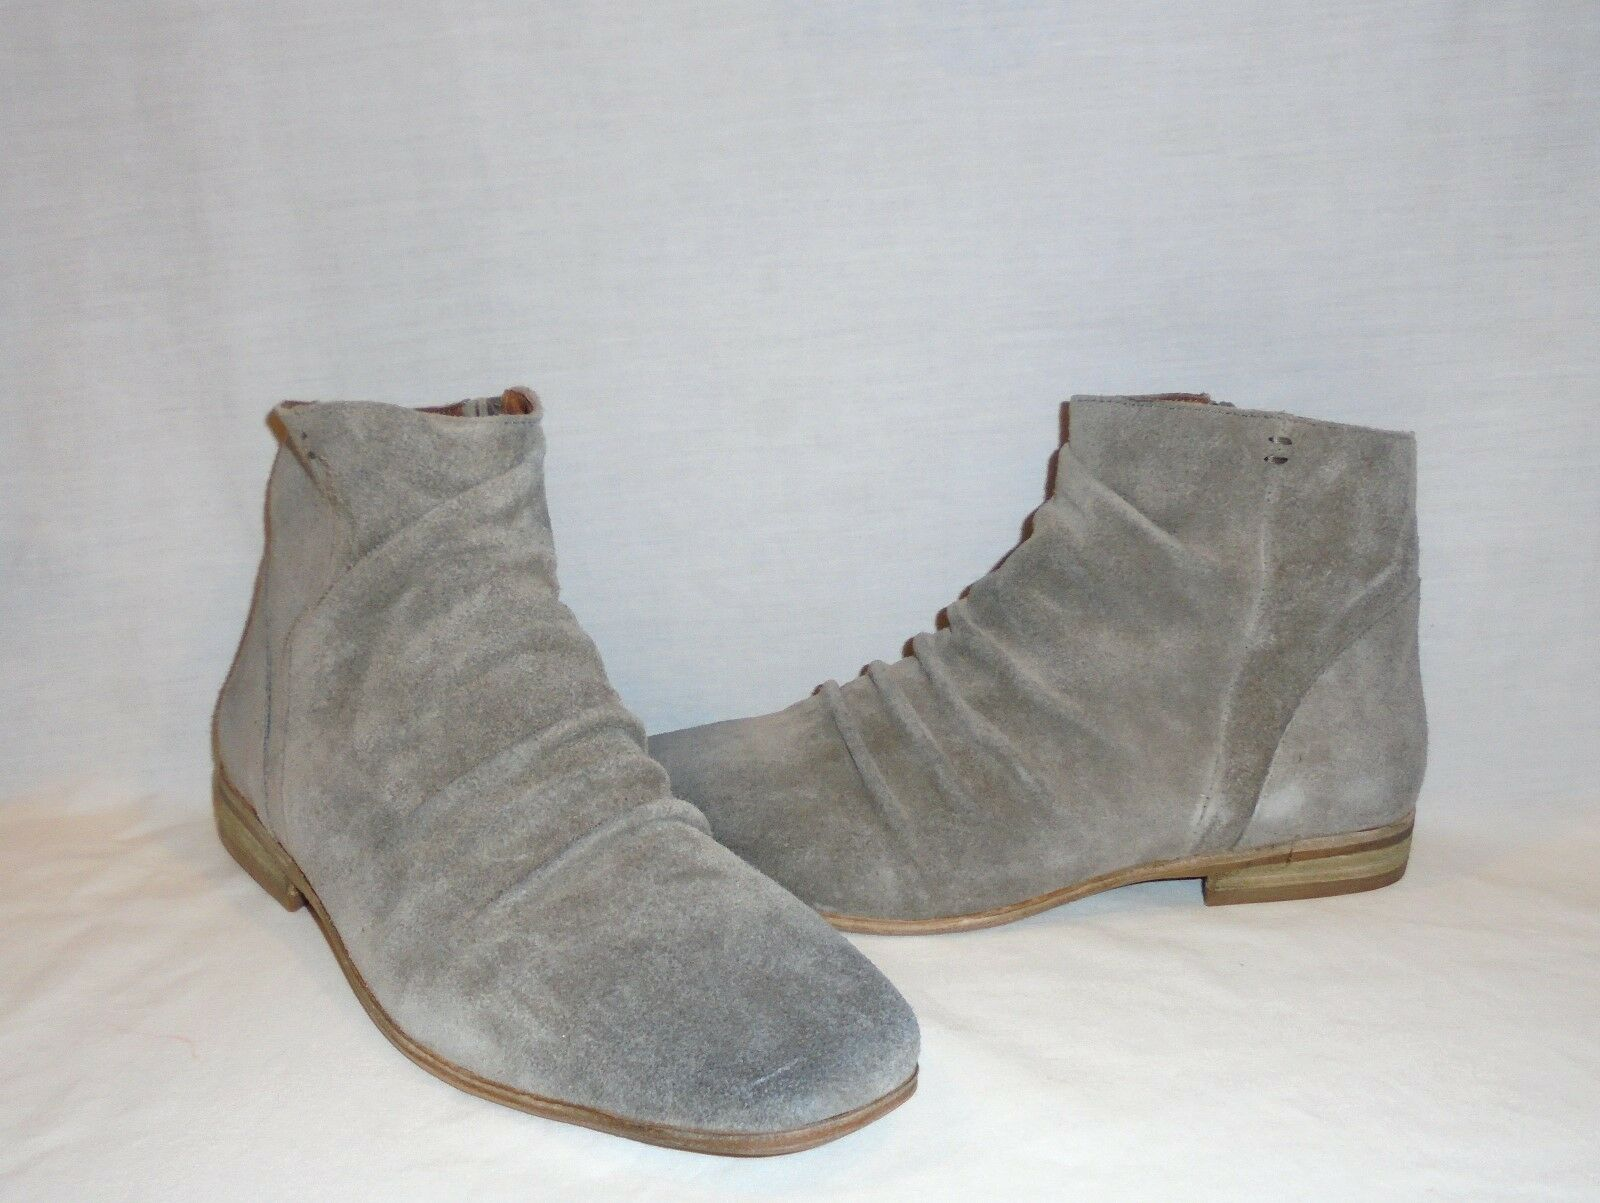 Jeffrey Campbell Women's Speir Ruched Suede Ankle Boot Retail  198 size 7